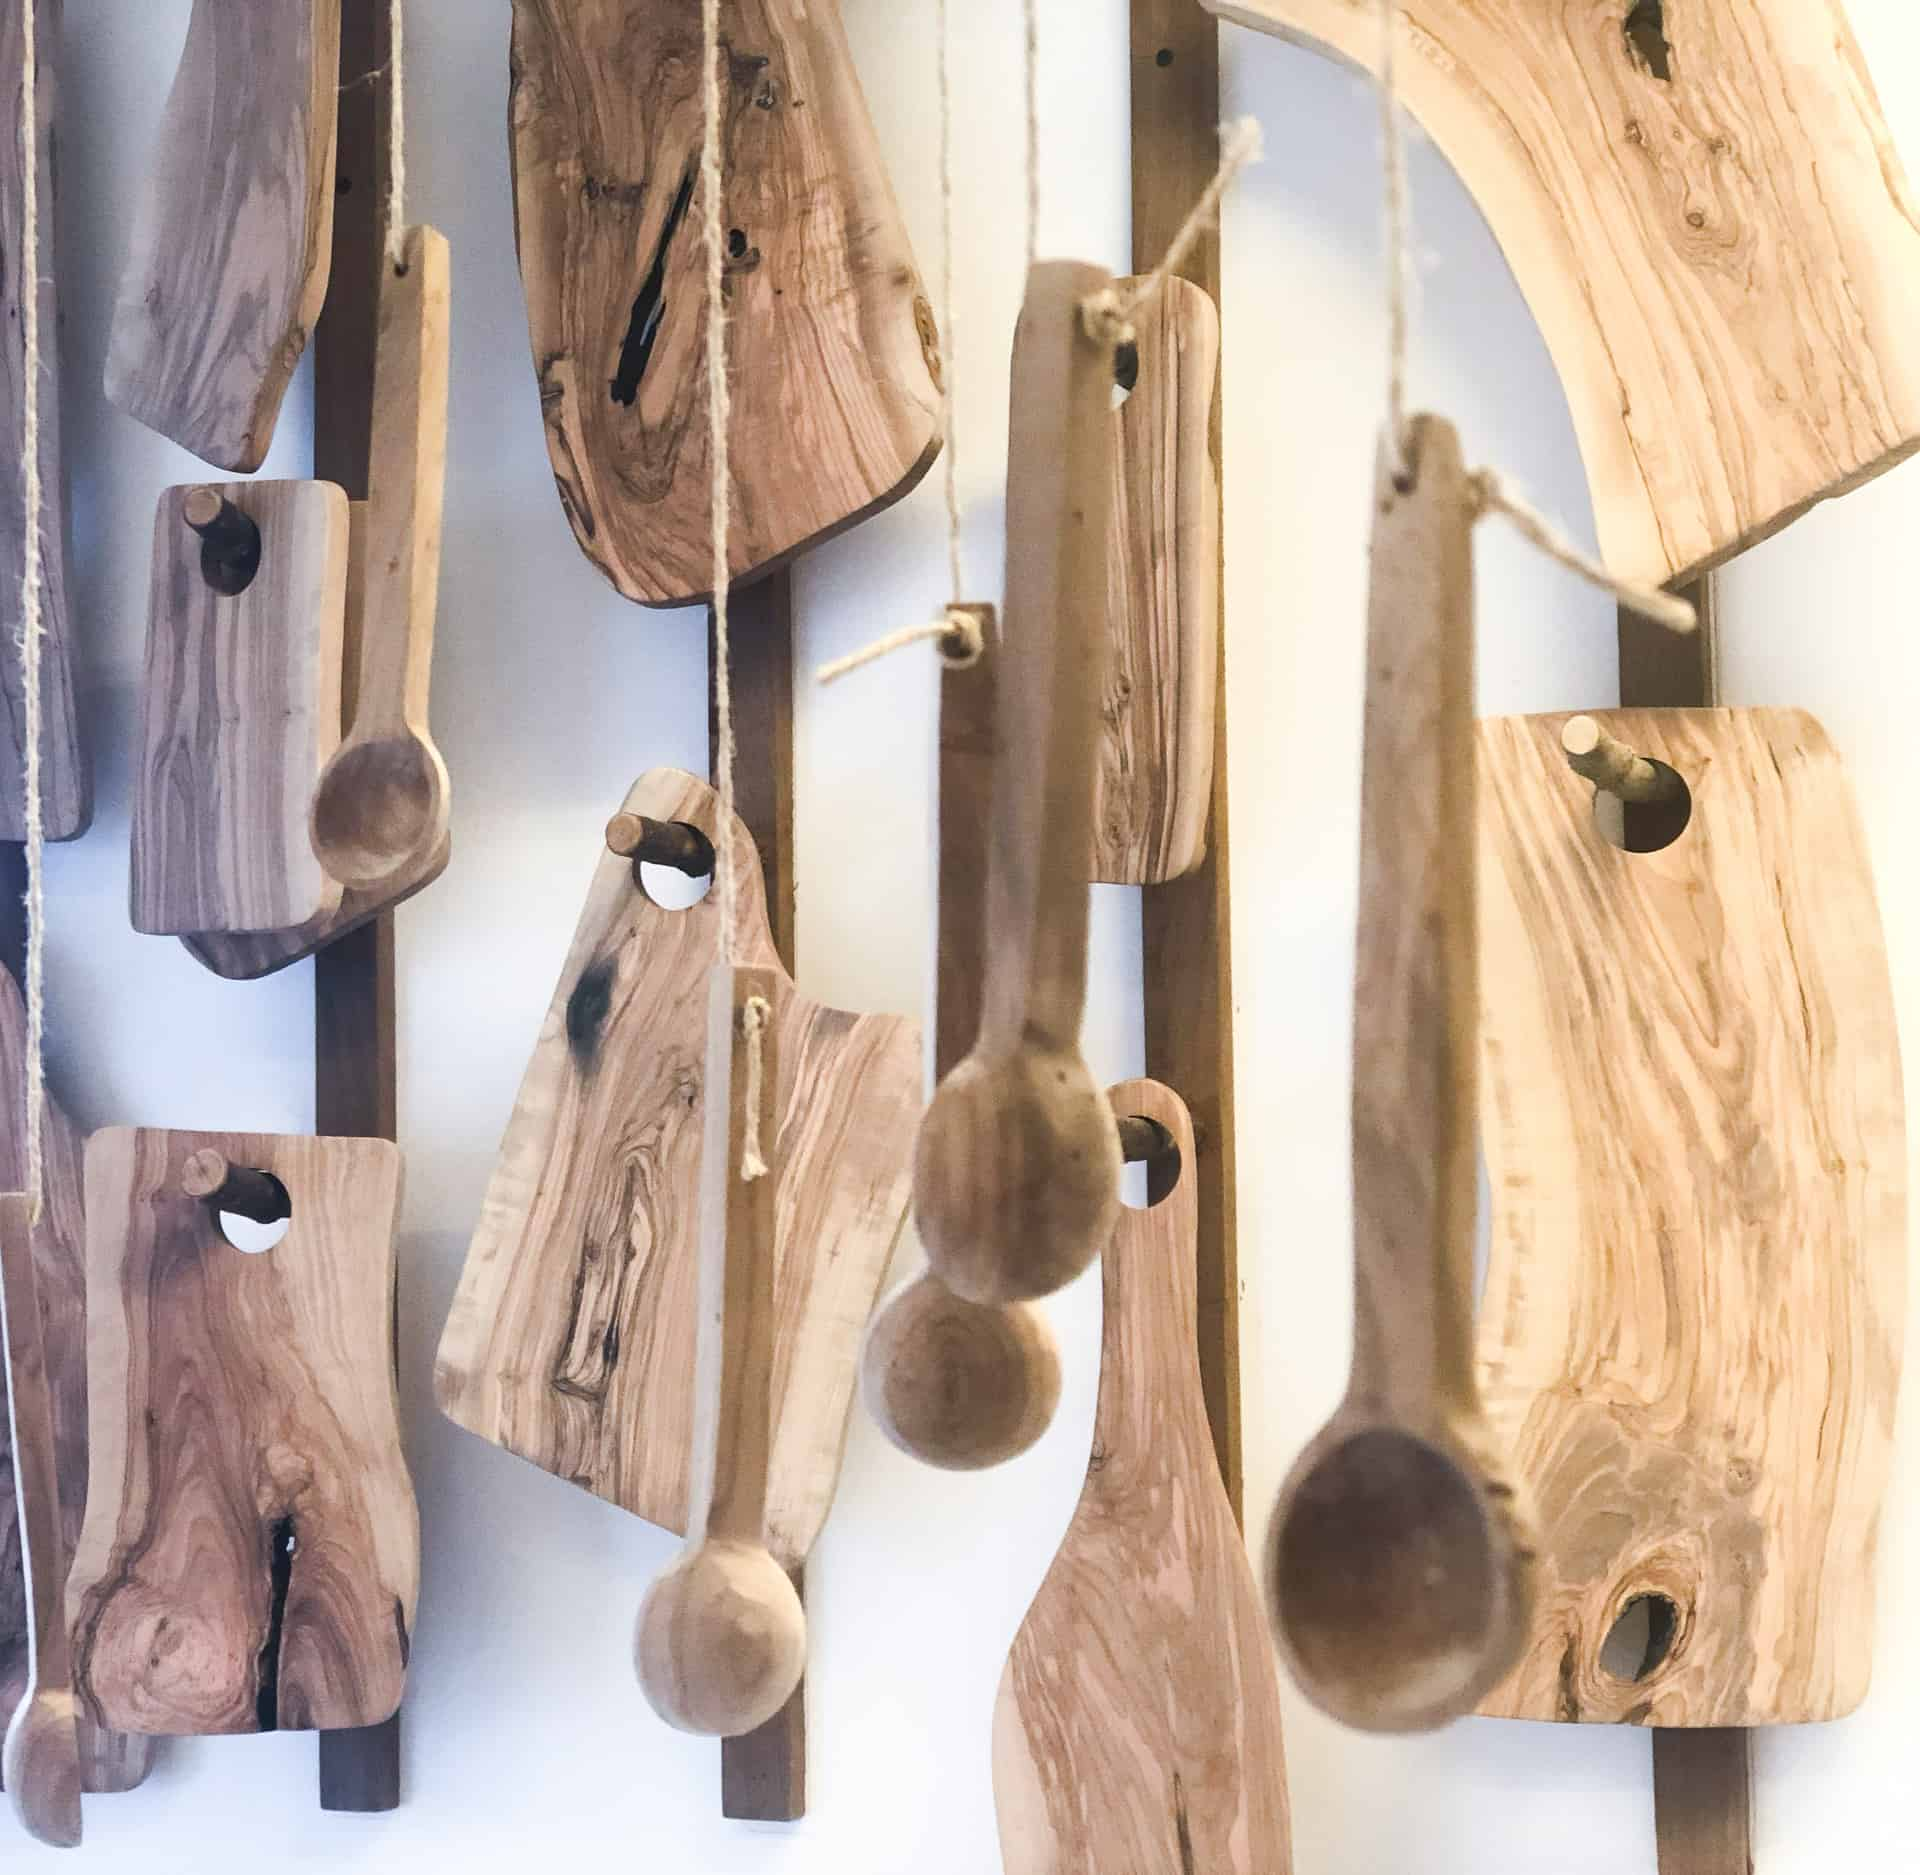 Kılçık concept handmade wooden kitchenwares made in a Turkish workshop